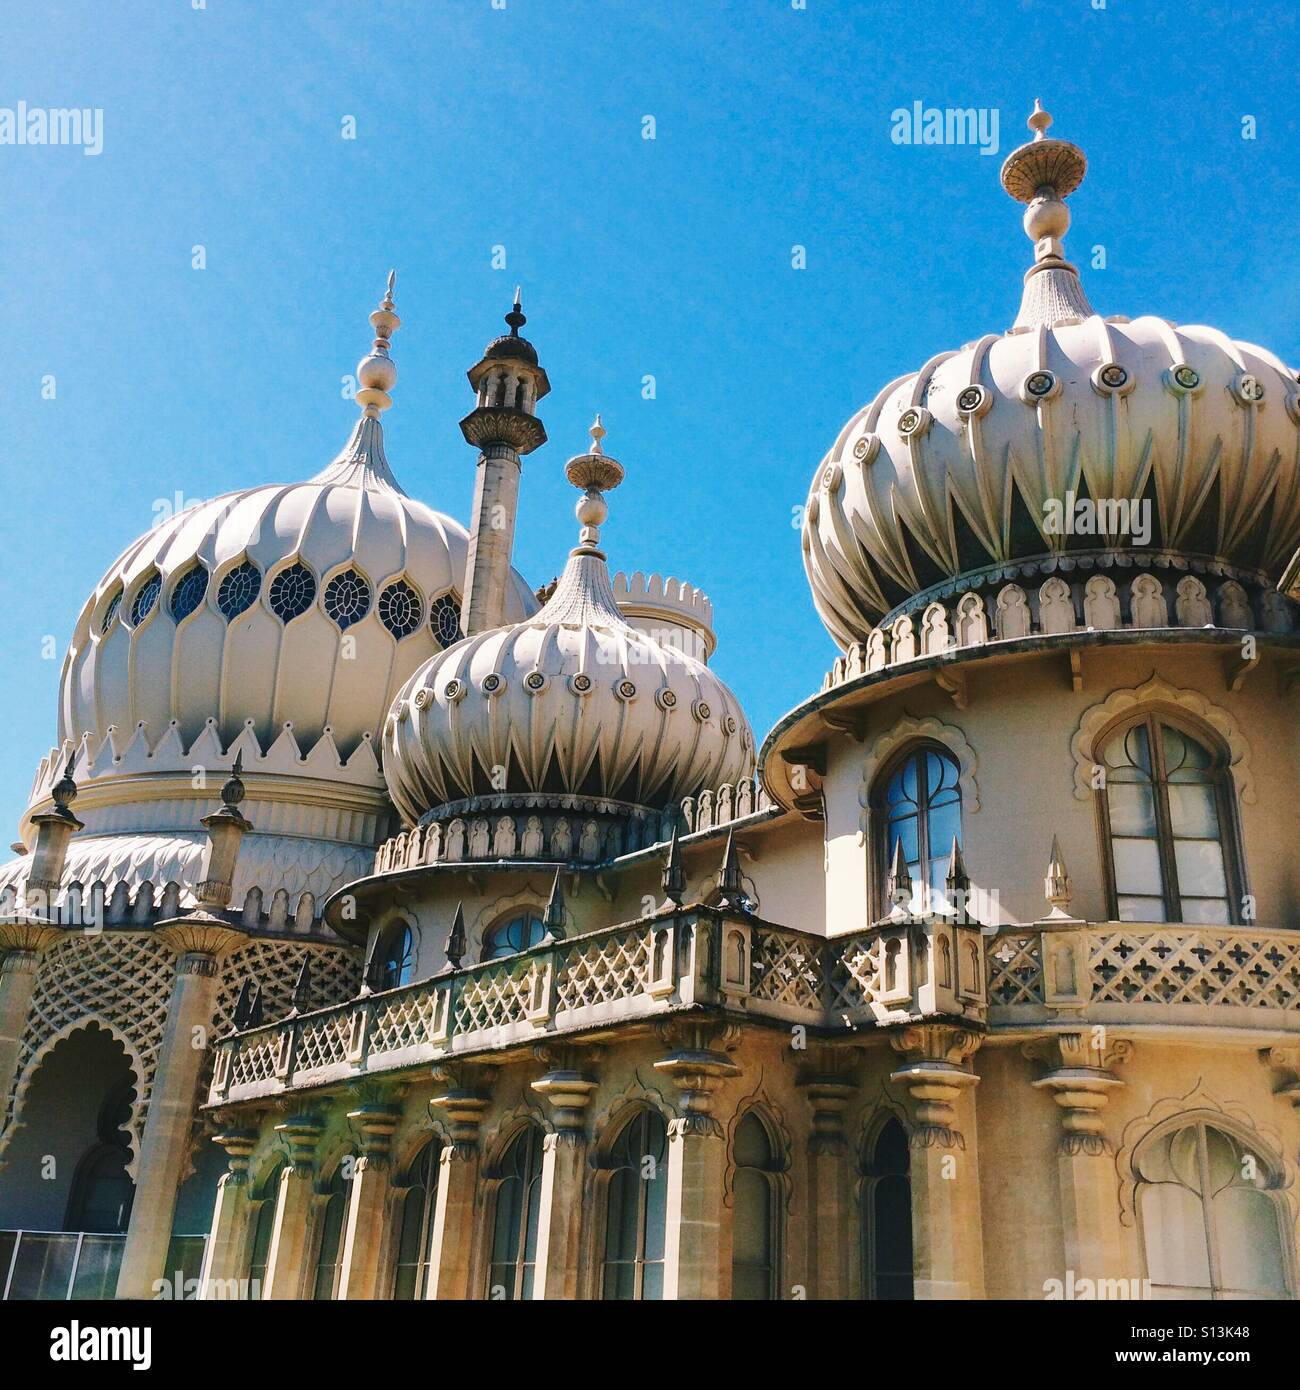 Brighton Pavillion in Brighton Sussex England UK - Stock Image